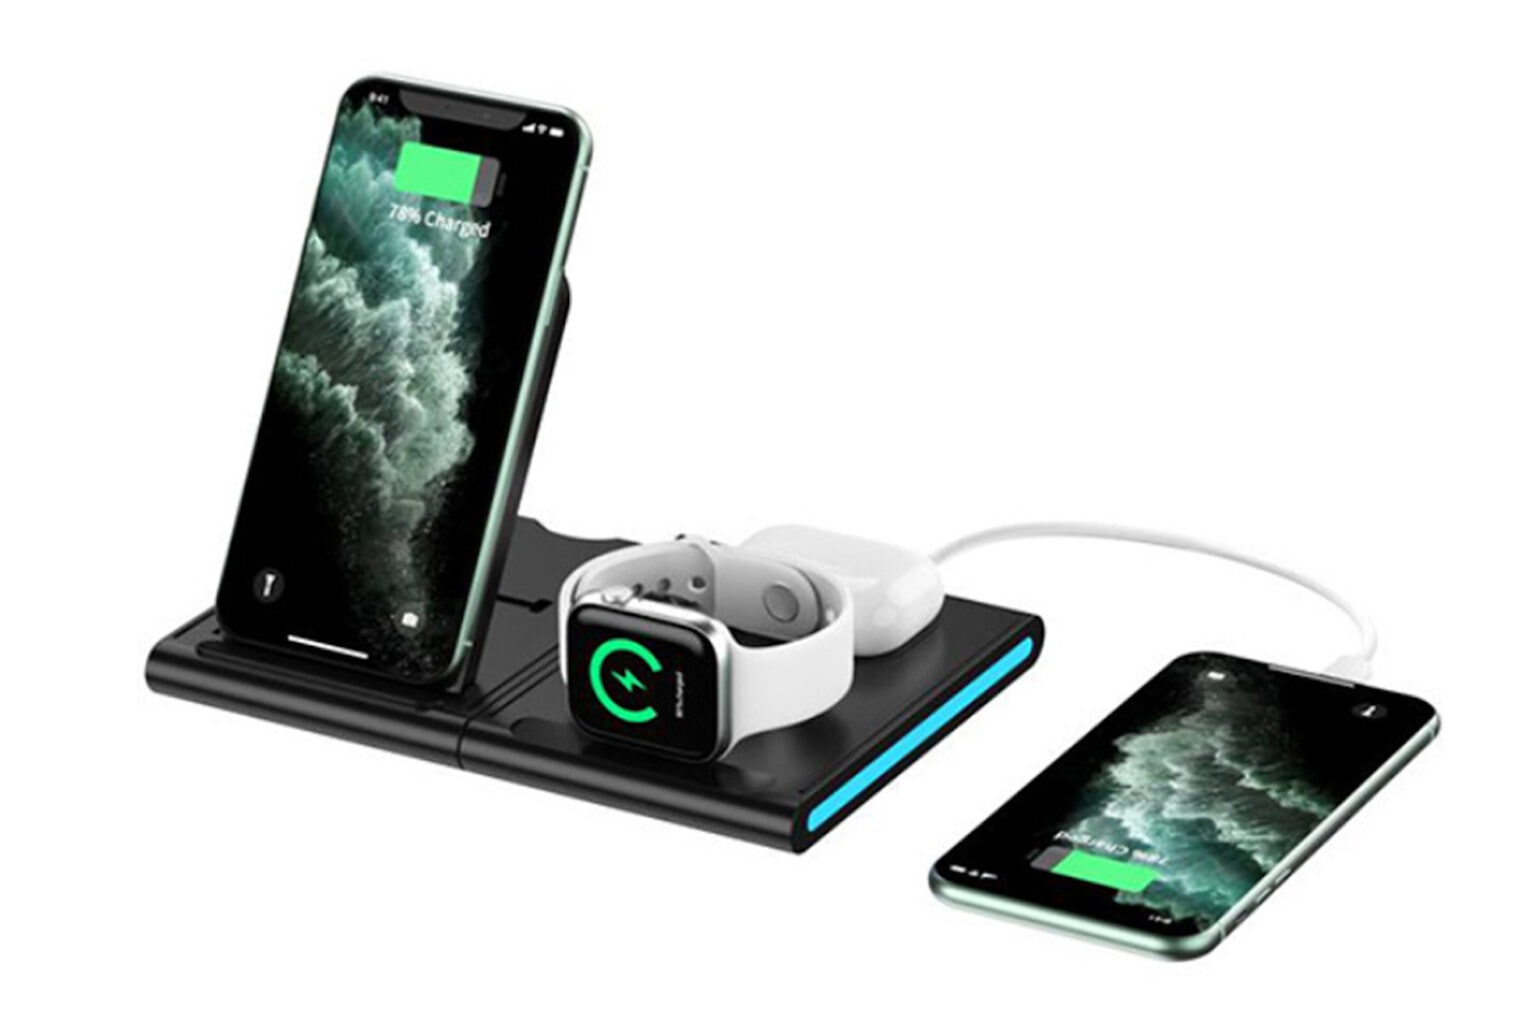 Magnetic Power Tiles 4-in-1 Wireless Charging Station